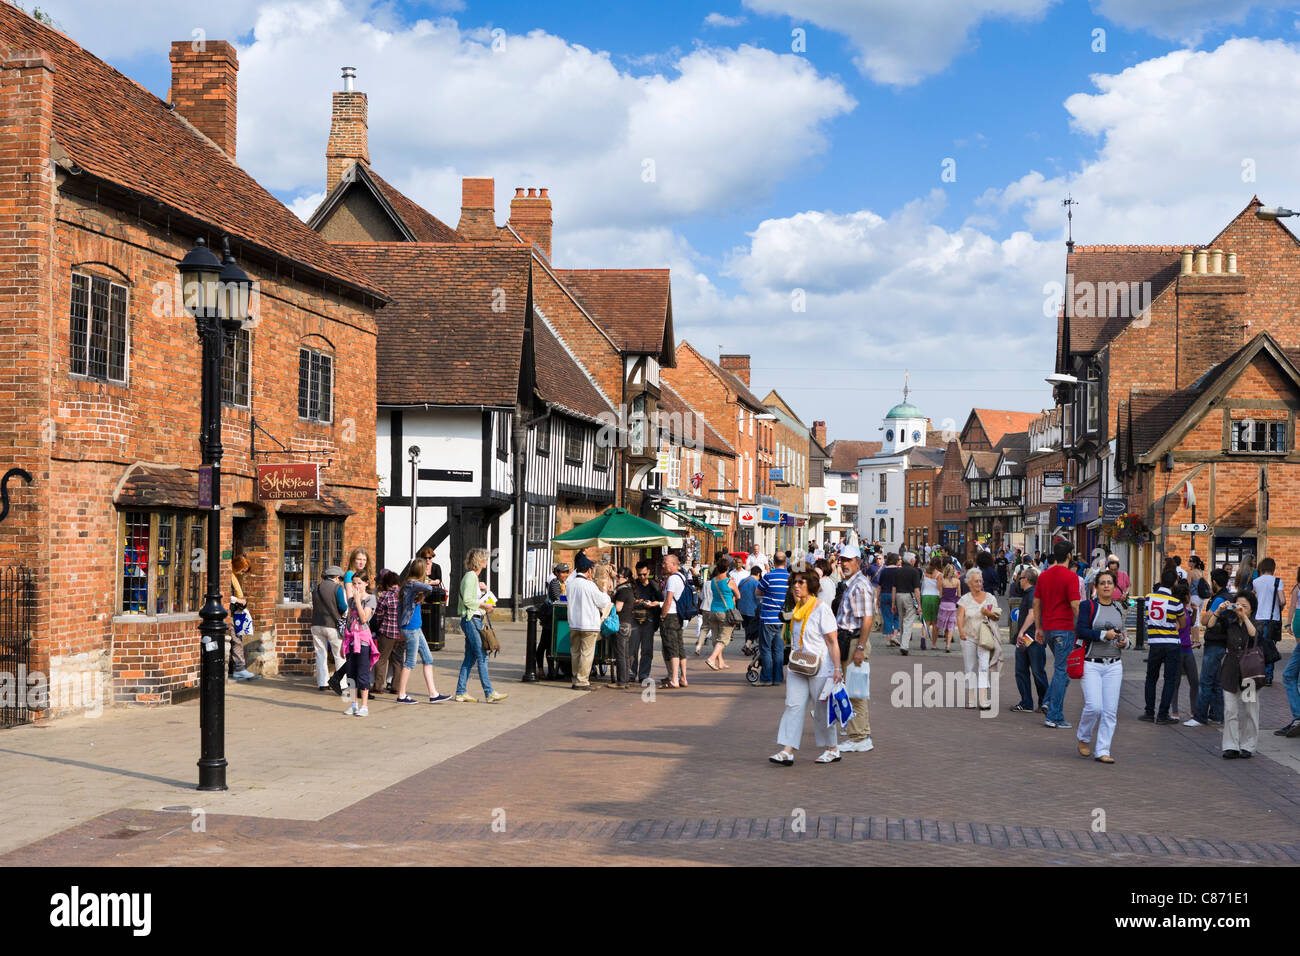 Shops on Henley Street in the historic centre, Stratford-upon-Avon, Warwickshire, England, UK - Stock Image